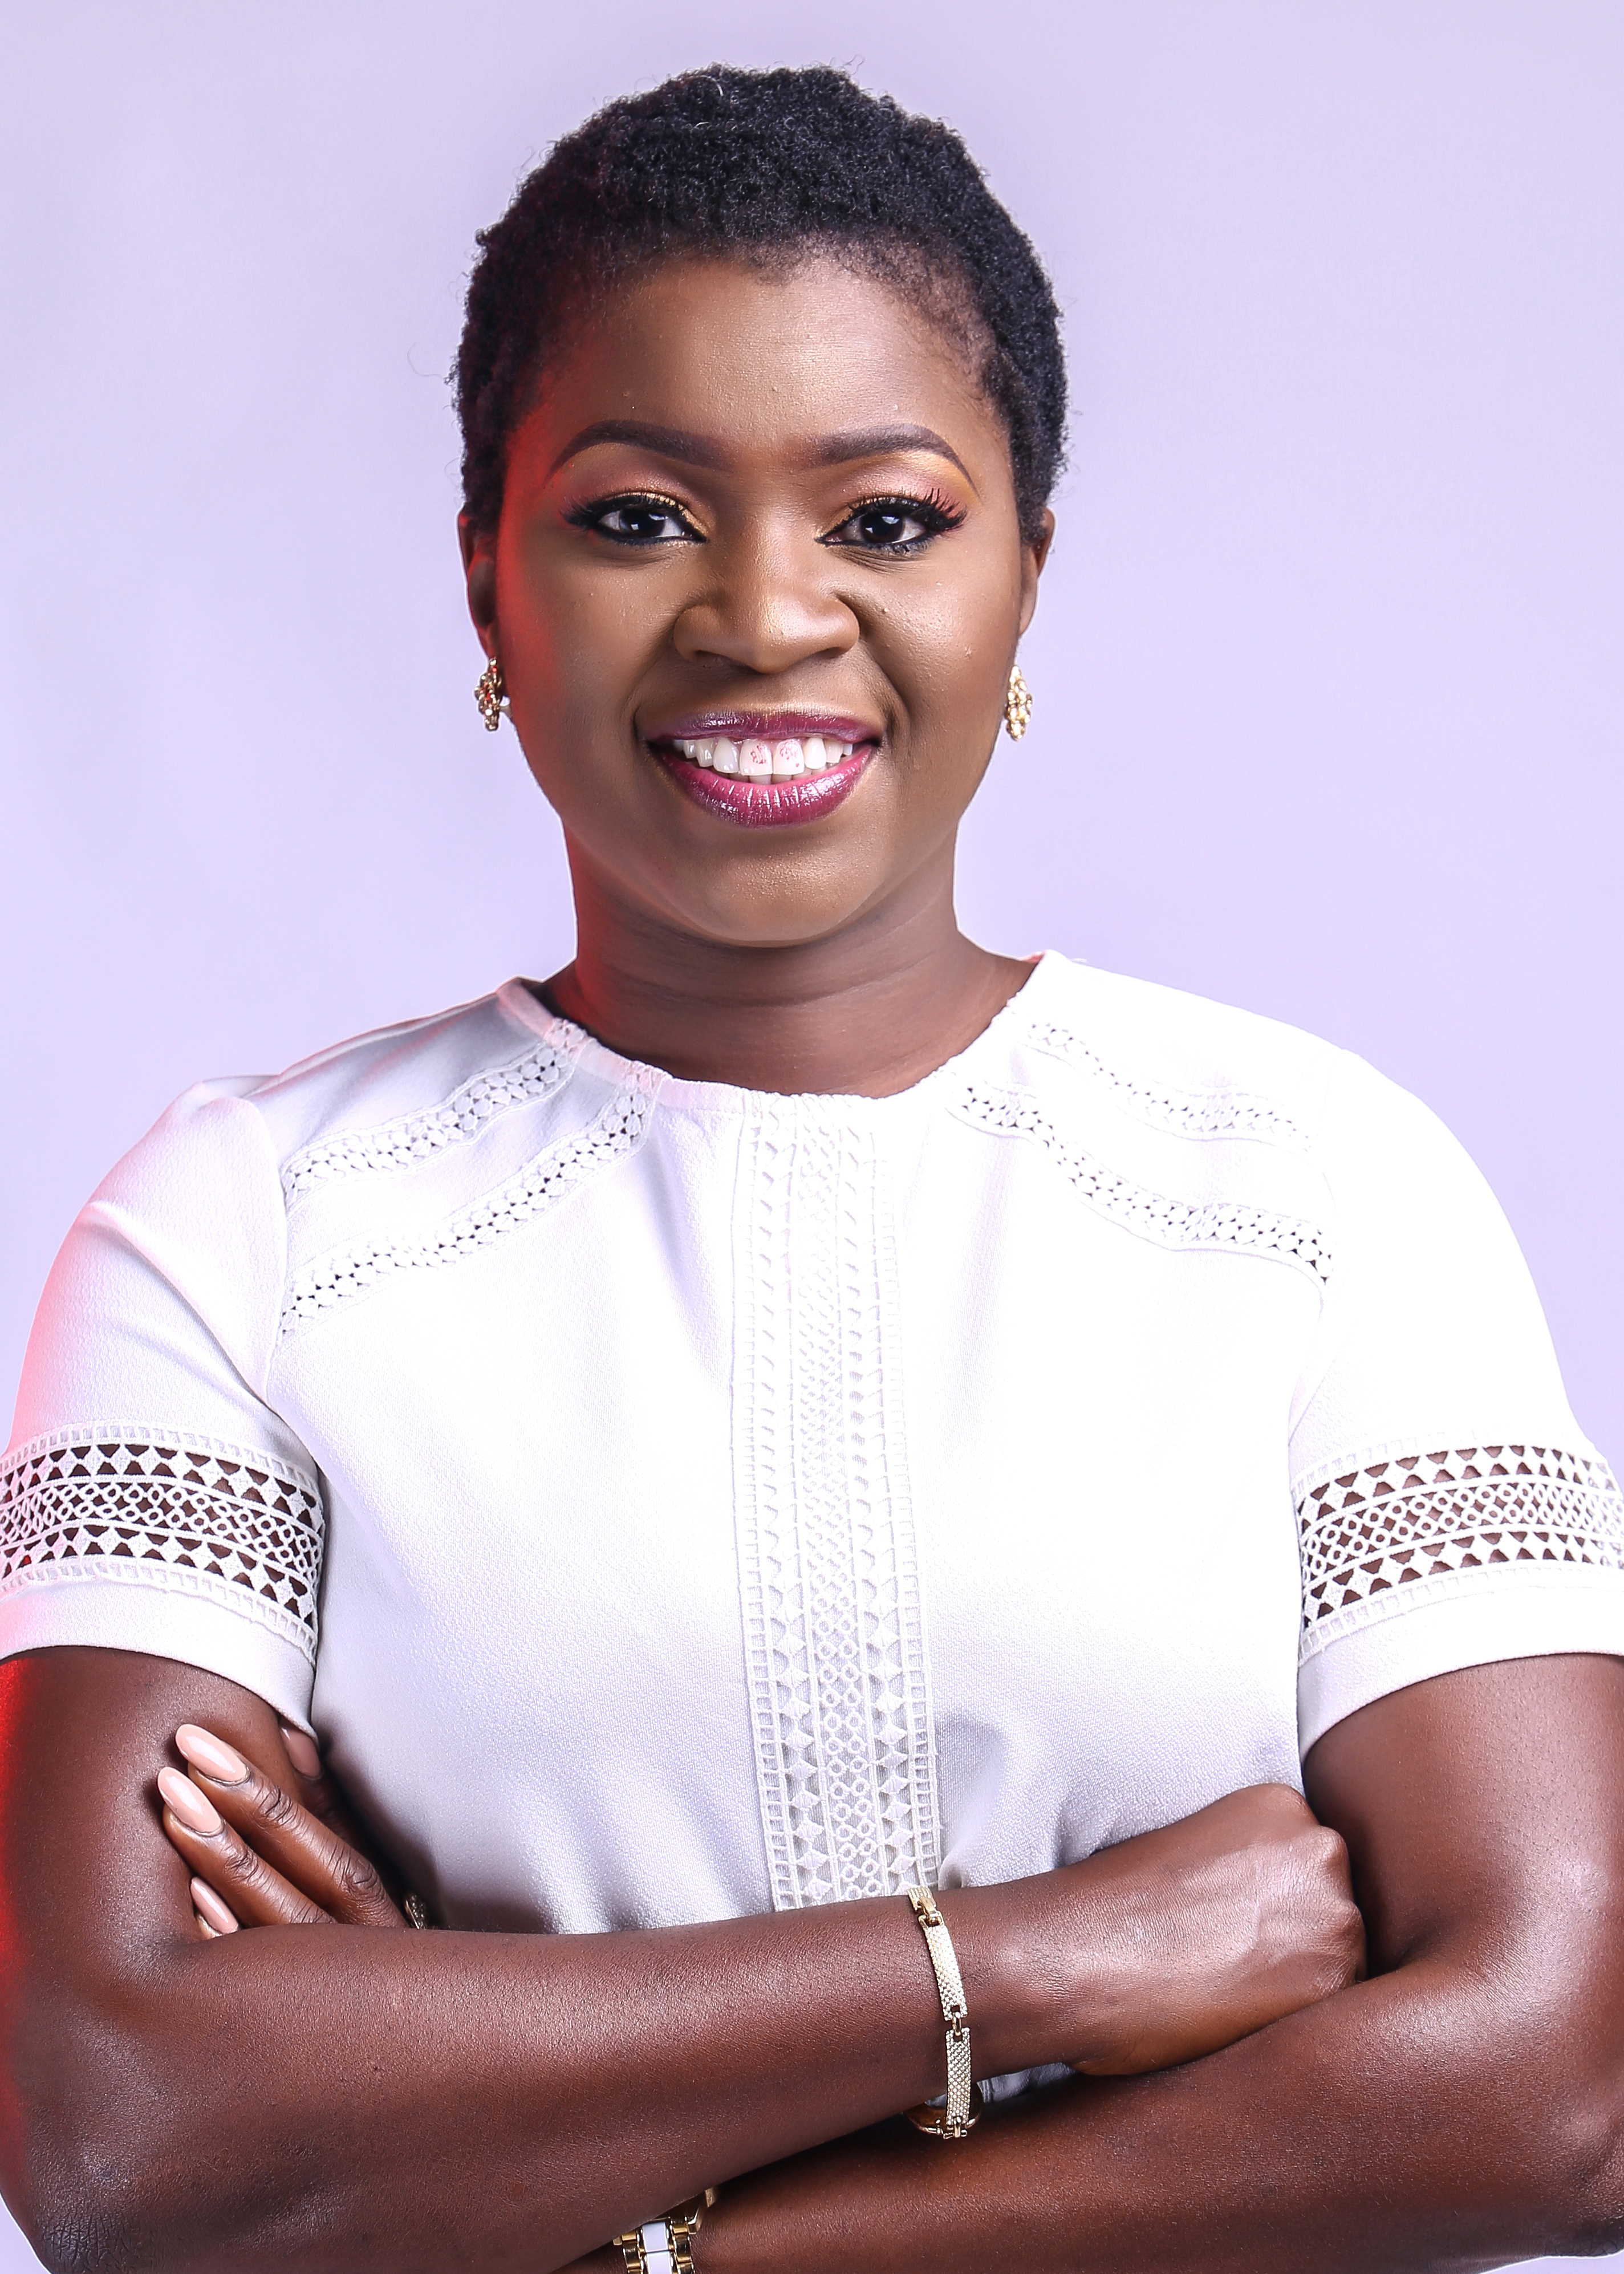 Abolaji Odunuga: Duchess International Magazine Aims to Bring Women Together